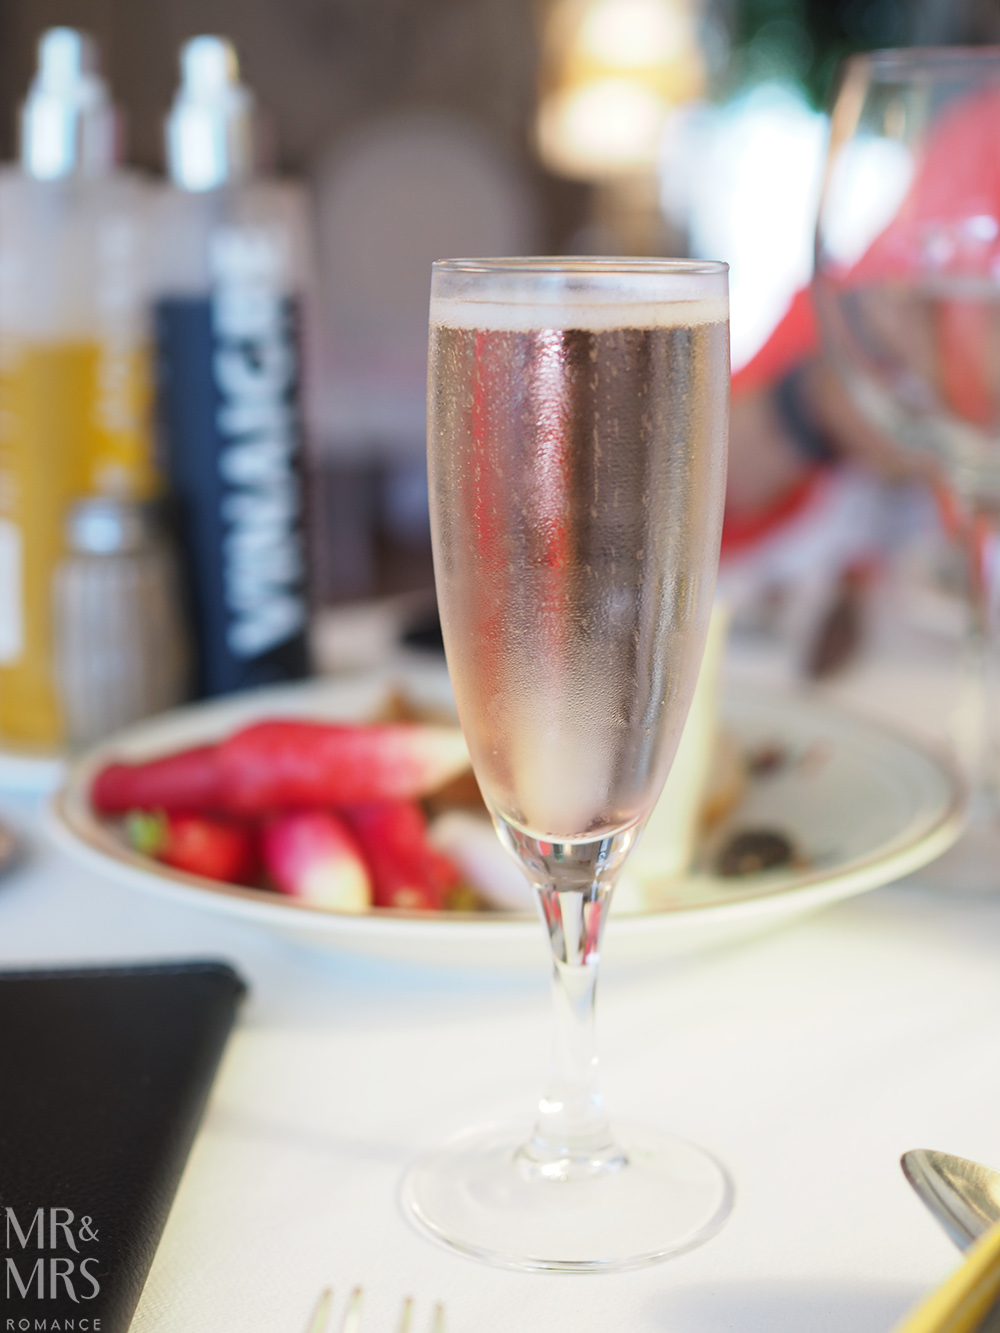 Violet Prosecco at Restaurant Beau Sejour Gorbio - Mr & Mrs Romance